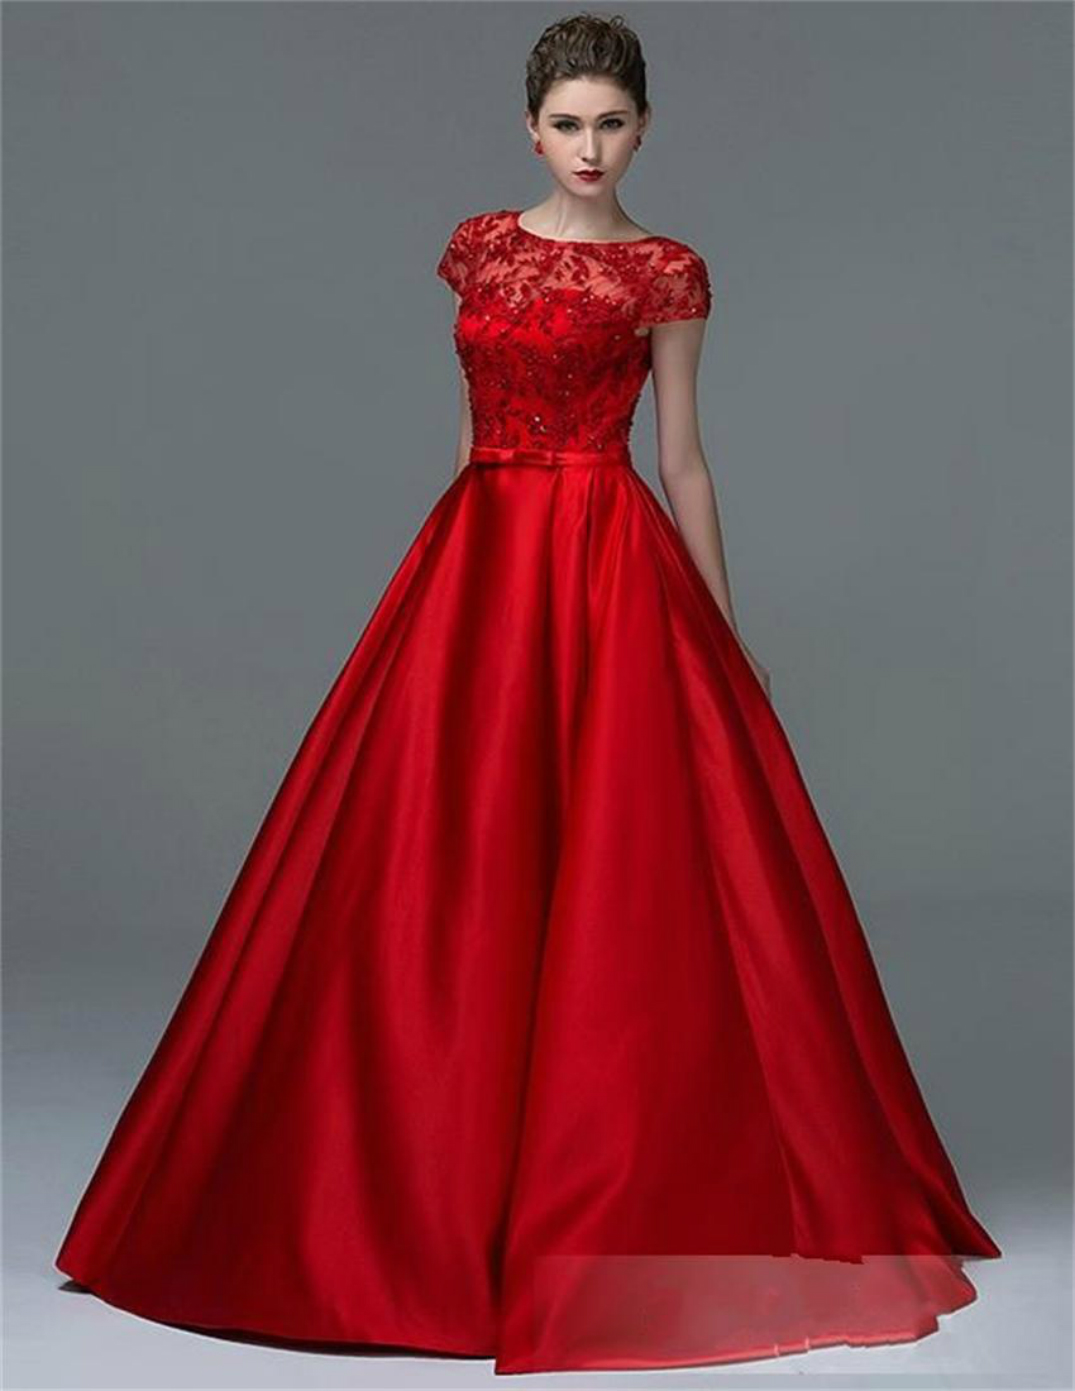 Beautiful Dresses For Christmas